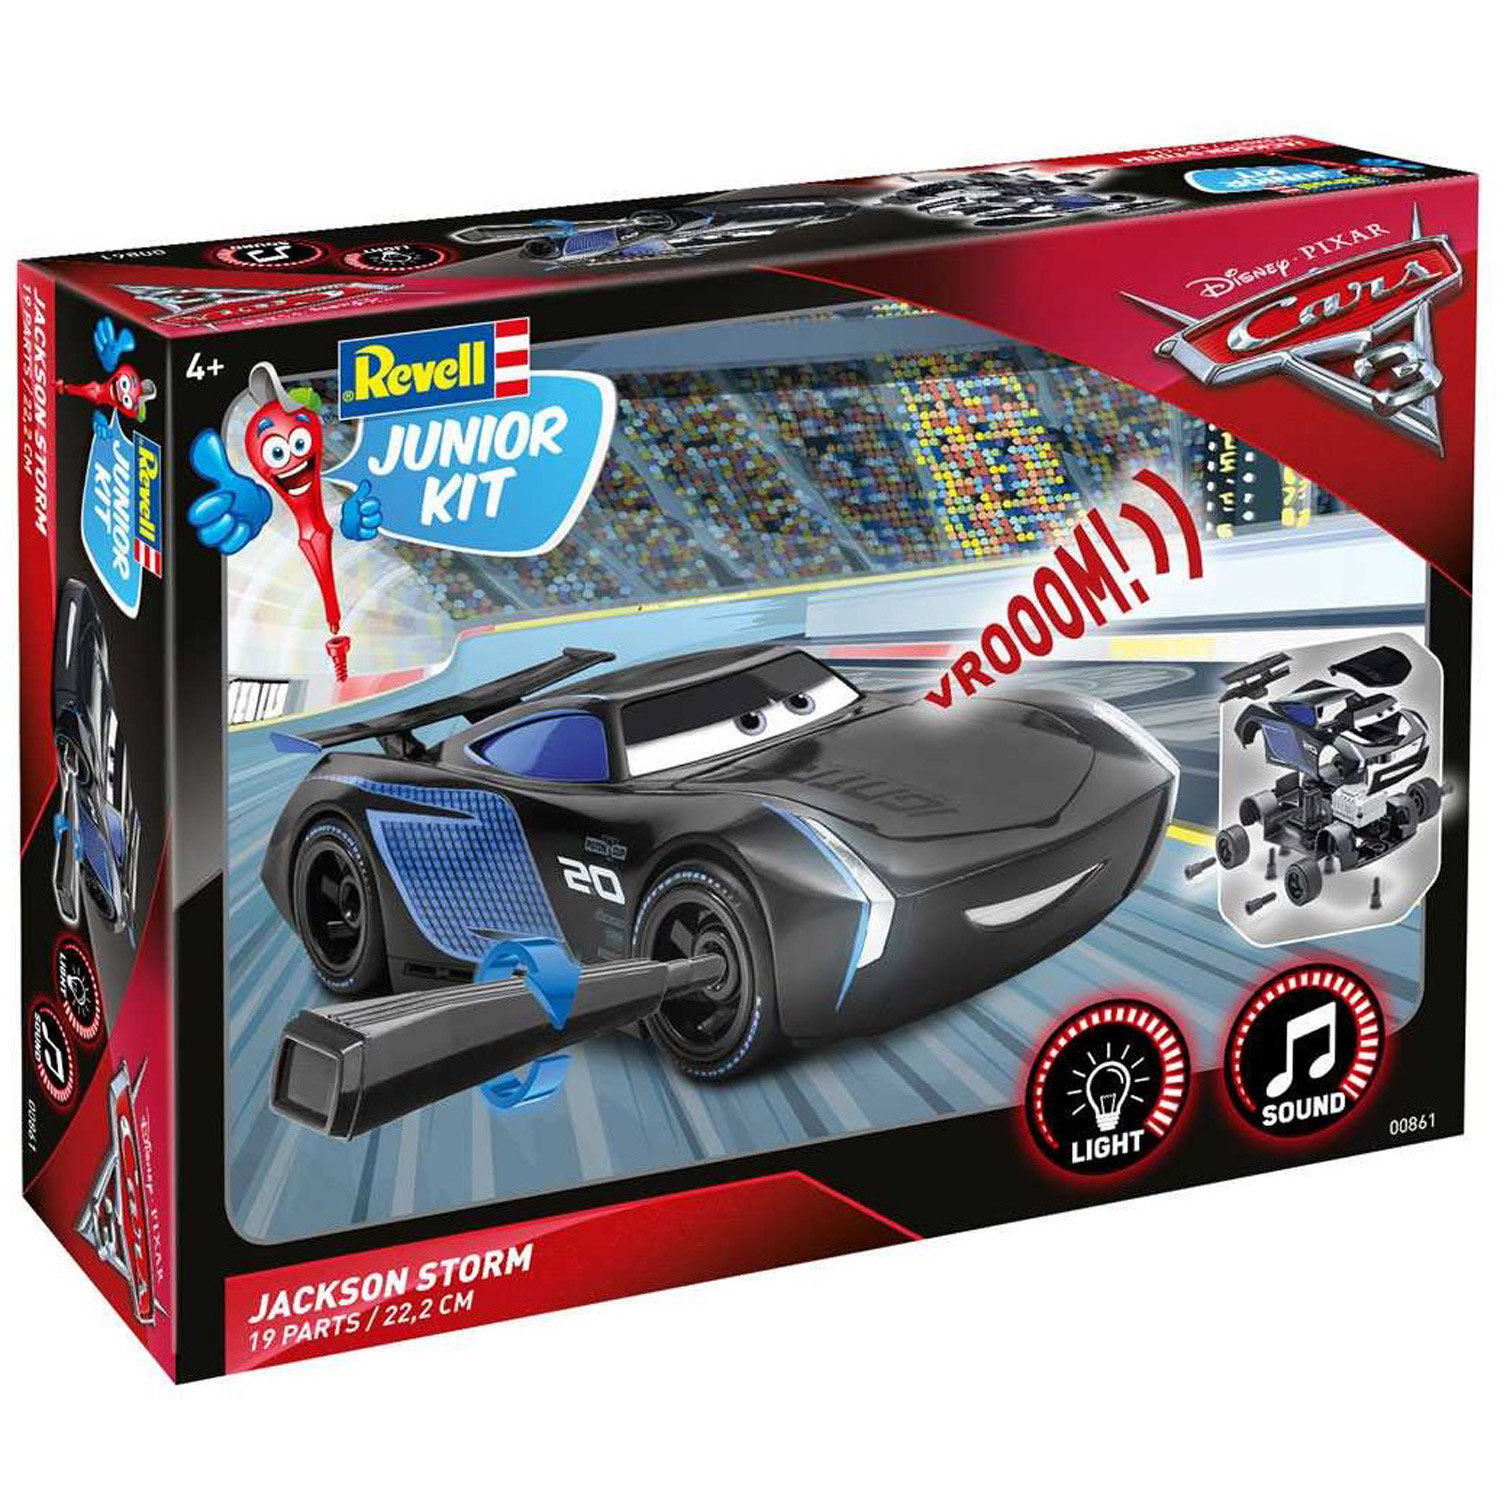 Cars 3 Jackson Storm Jouet Maquette Voiture Junior Kit Cars 3 Jackson Storm